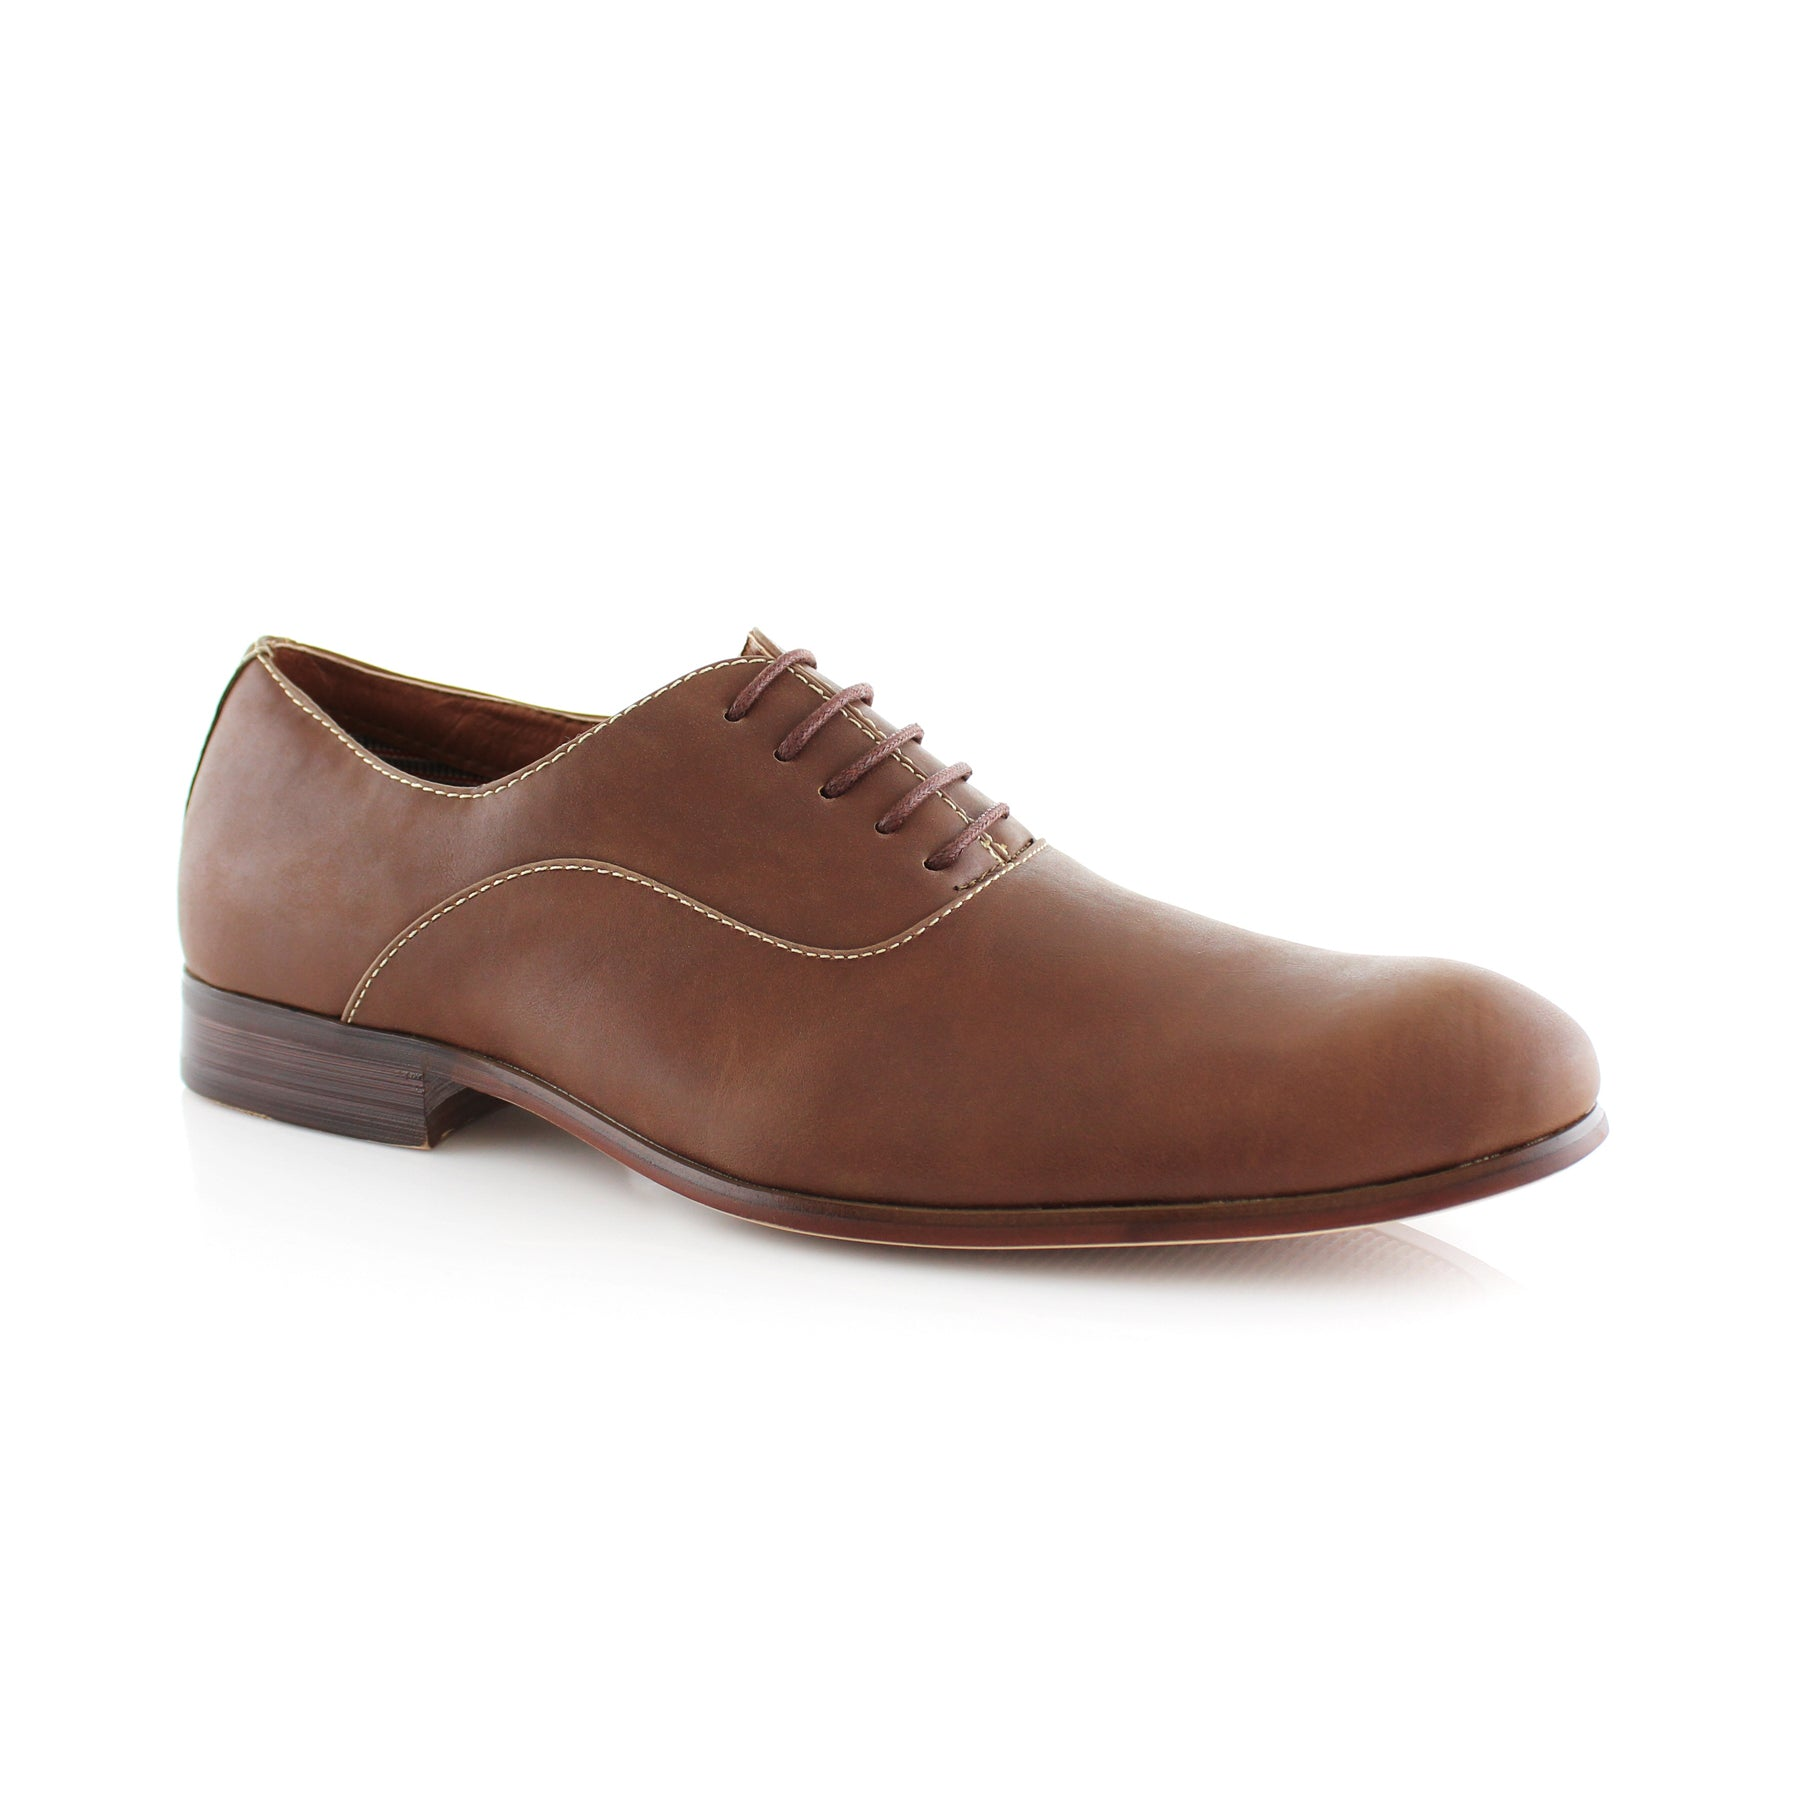 Ferro Aldo ABEL MFA139255 Brown